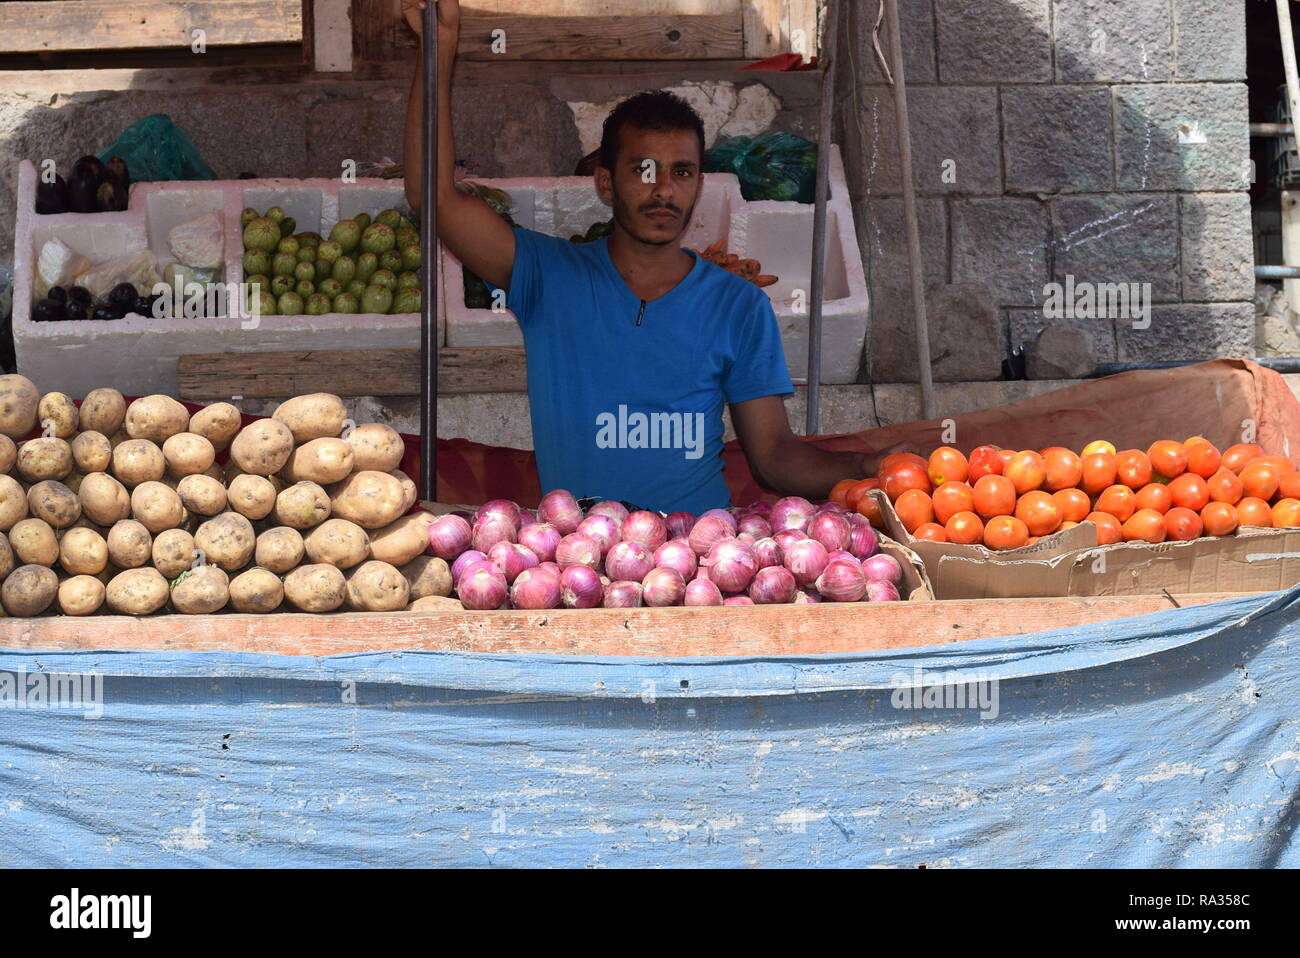 Aden, Yemen. 31st Dec, 2018. An owner of a vegetable store waits for customers near a market in the southern port city of Aden, Yemen, Dec. 31, 2018. In 2018, Yemen experienced dramatic escalation of the internal military conflict, severe collapse of the country's national currency and an outbreak of acute diseases. Yemeni people also suffered skyrocketing prices of basic commodities and lack of basic services, including clean water and electricity. TO GO WITH Spotlight: Yemenis to receive new year amid hard challenges, devastating civil war Credit: Murad Abdo/Xinhua/Alamy Live News - Stock Image